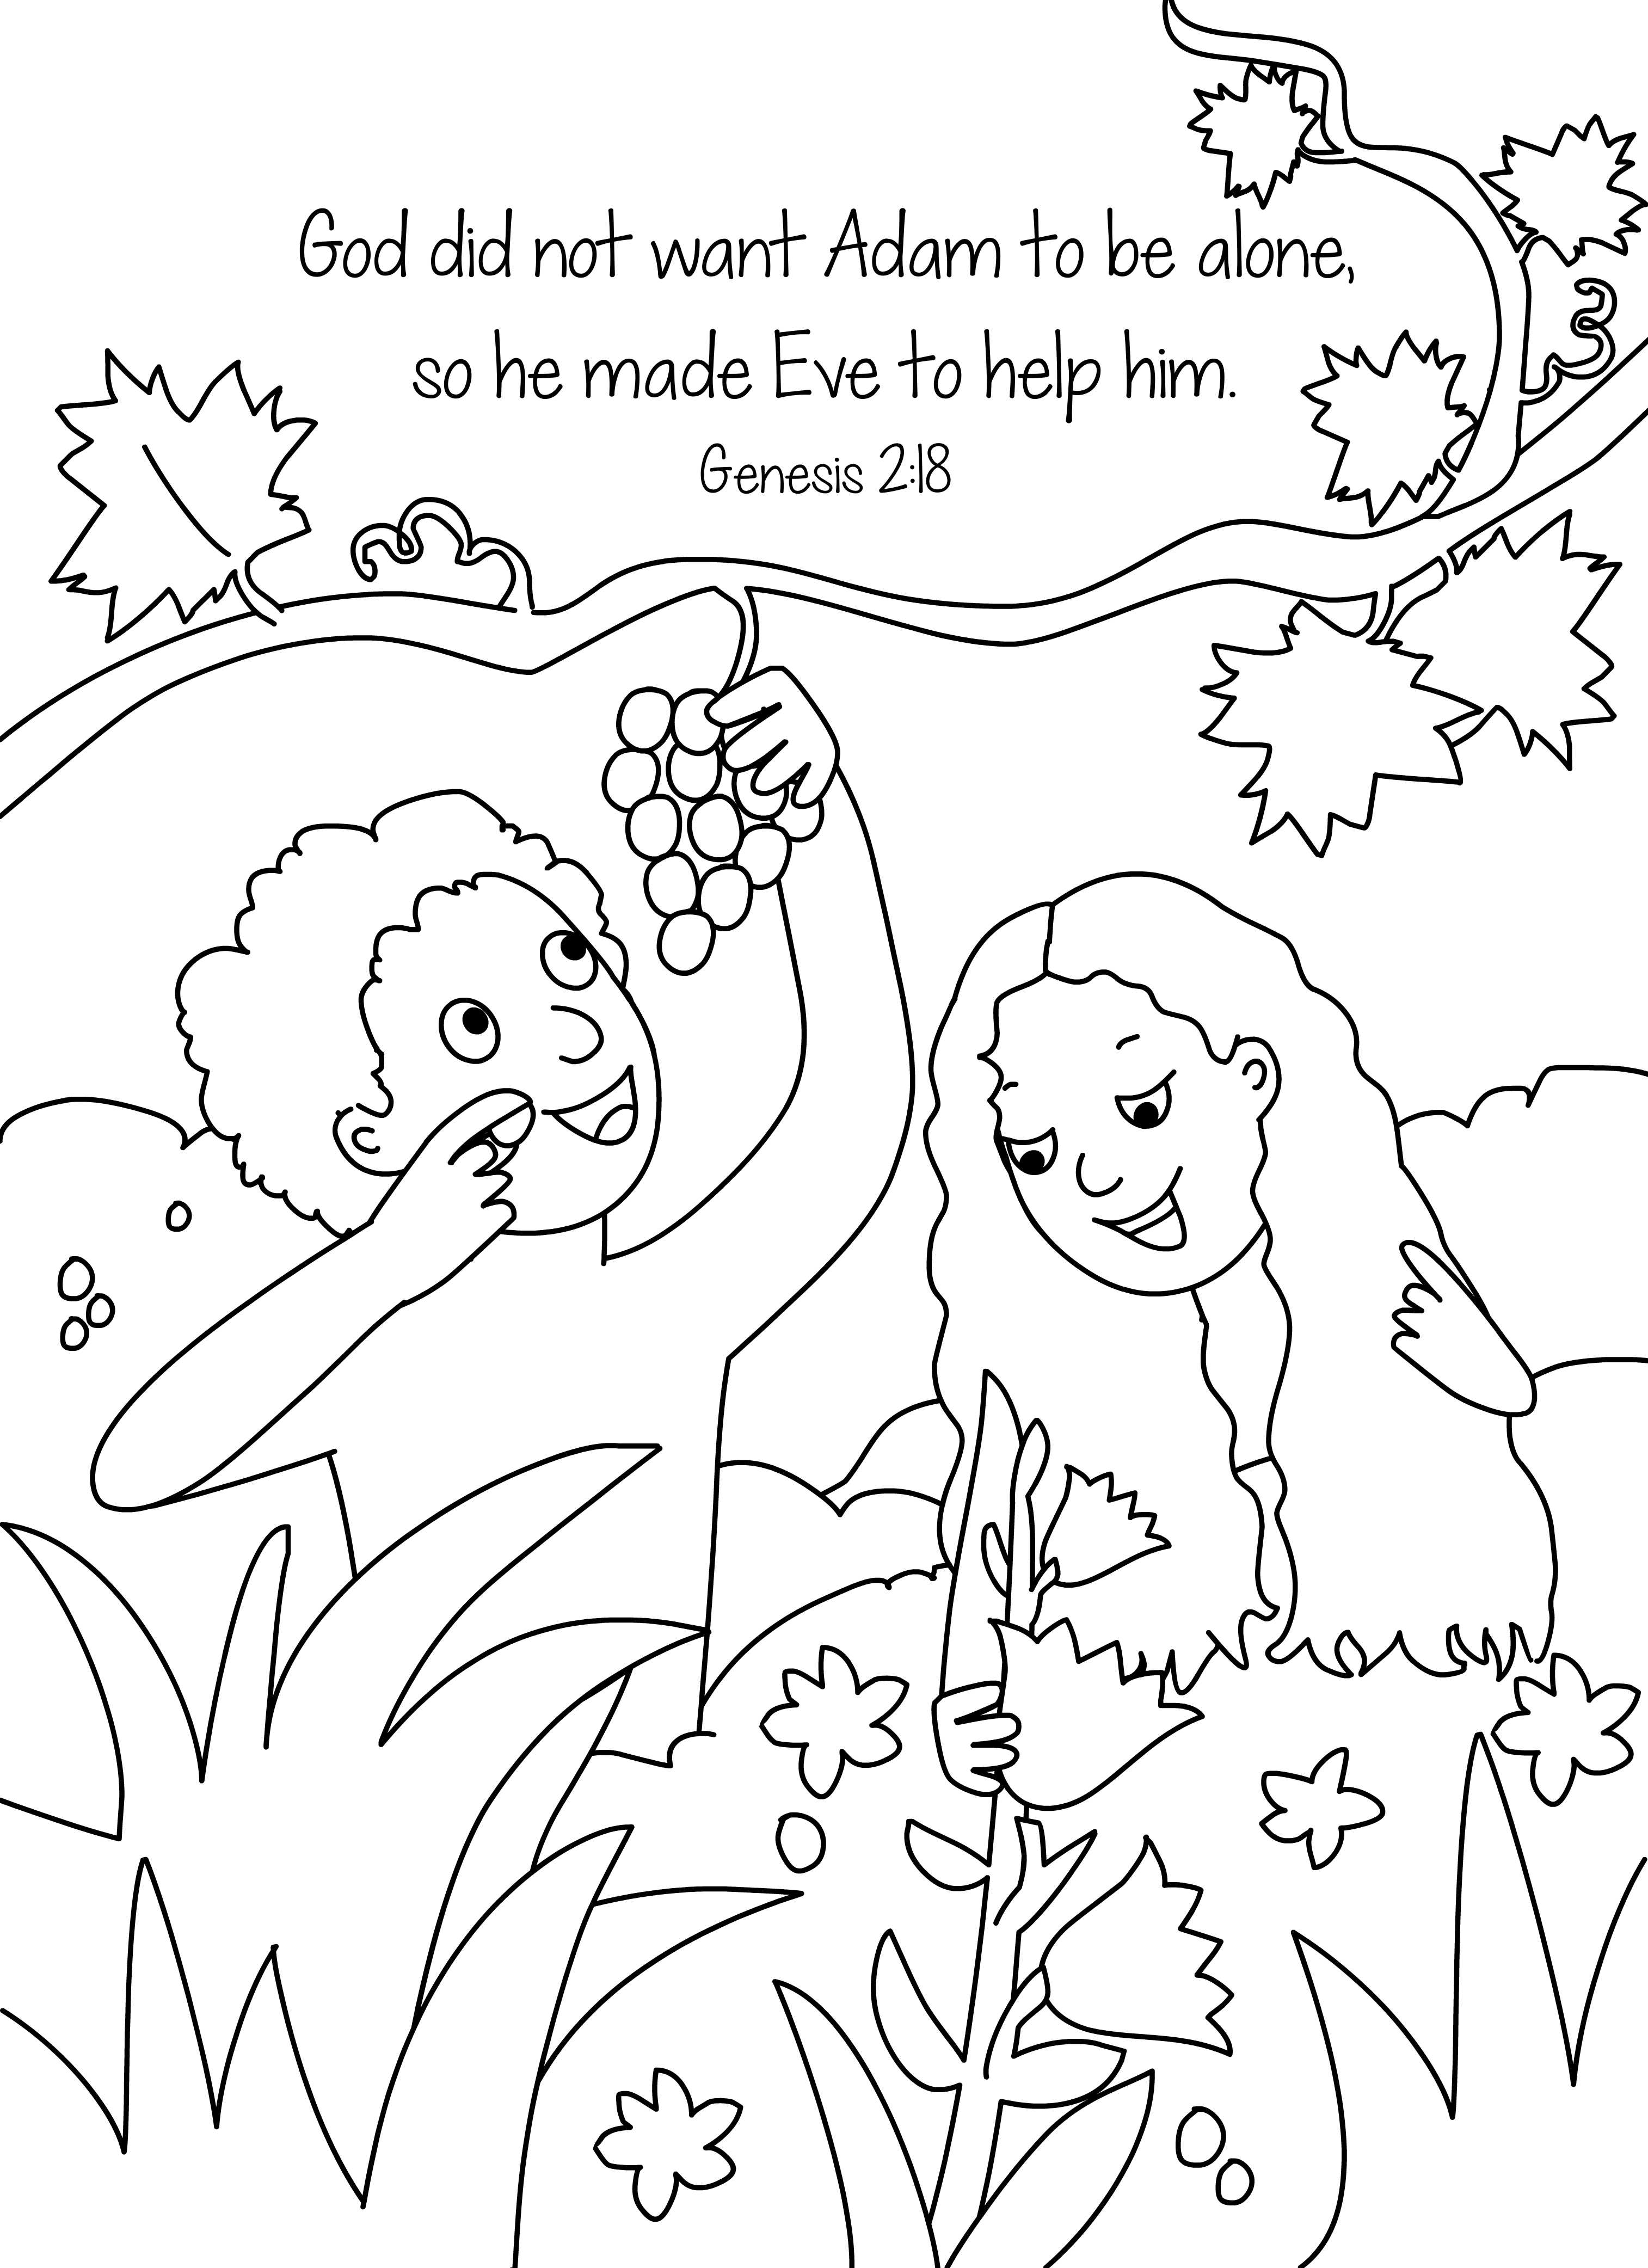 coloring page adam and eve free printable adam and eve coloring pages for kids best coloring page eve adam and